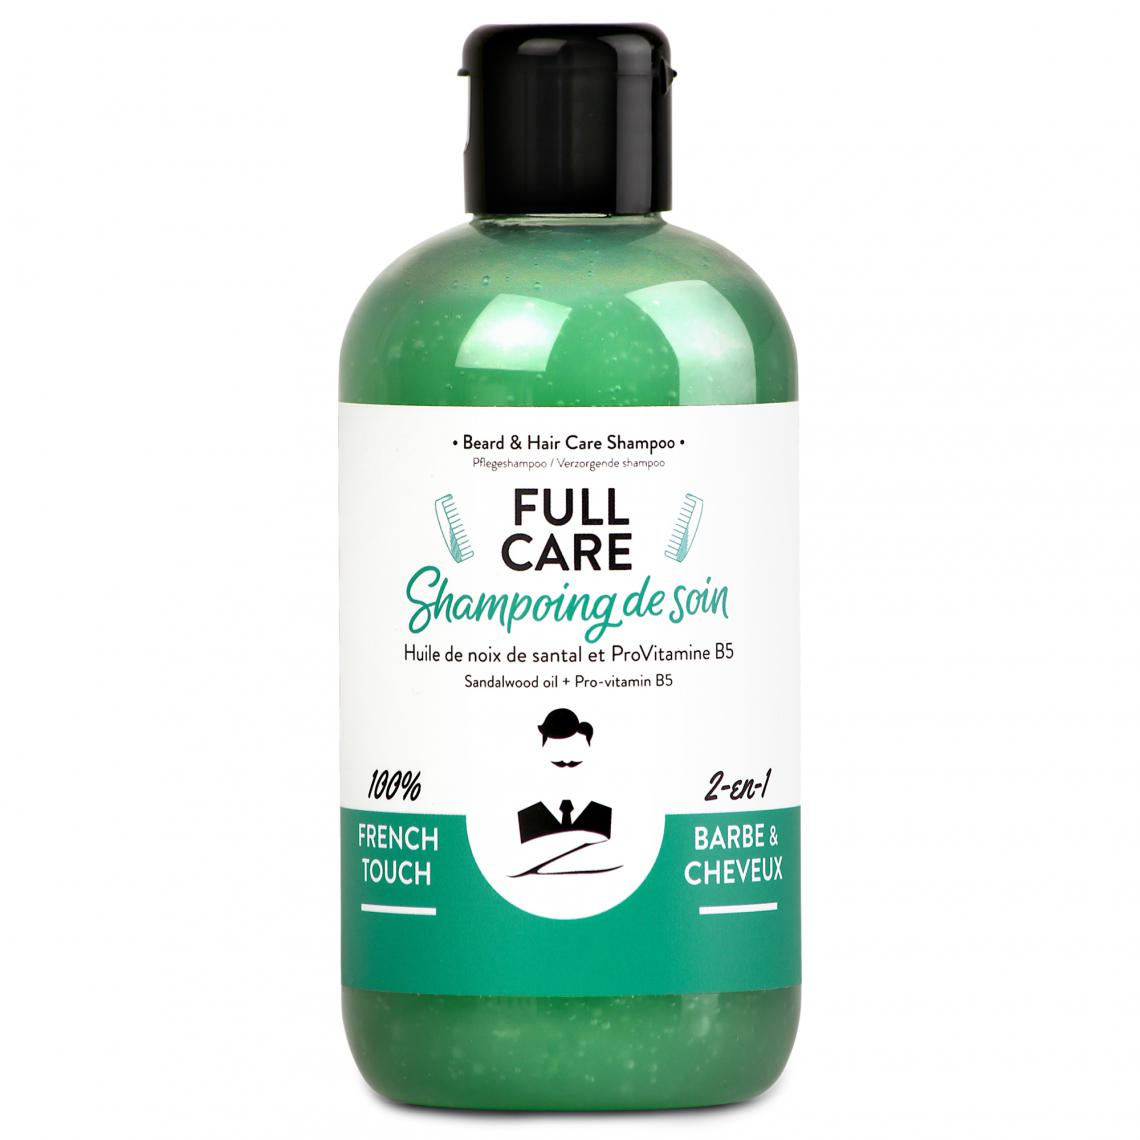 Shampoing naturel 2-en-1 barbe et cheveux Full Care (santal et pro-vitamine B5)